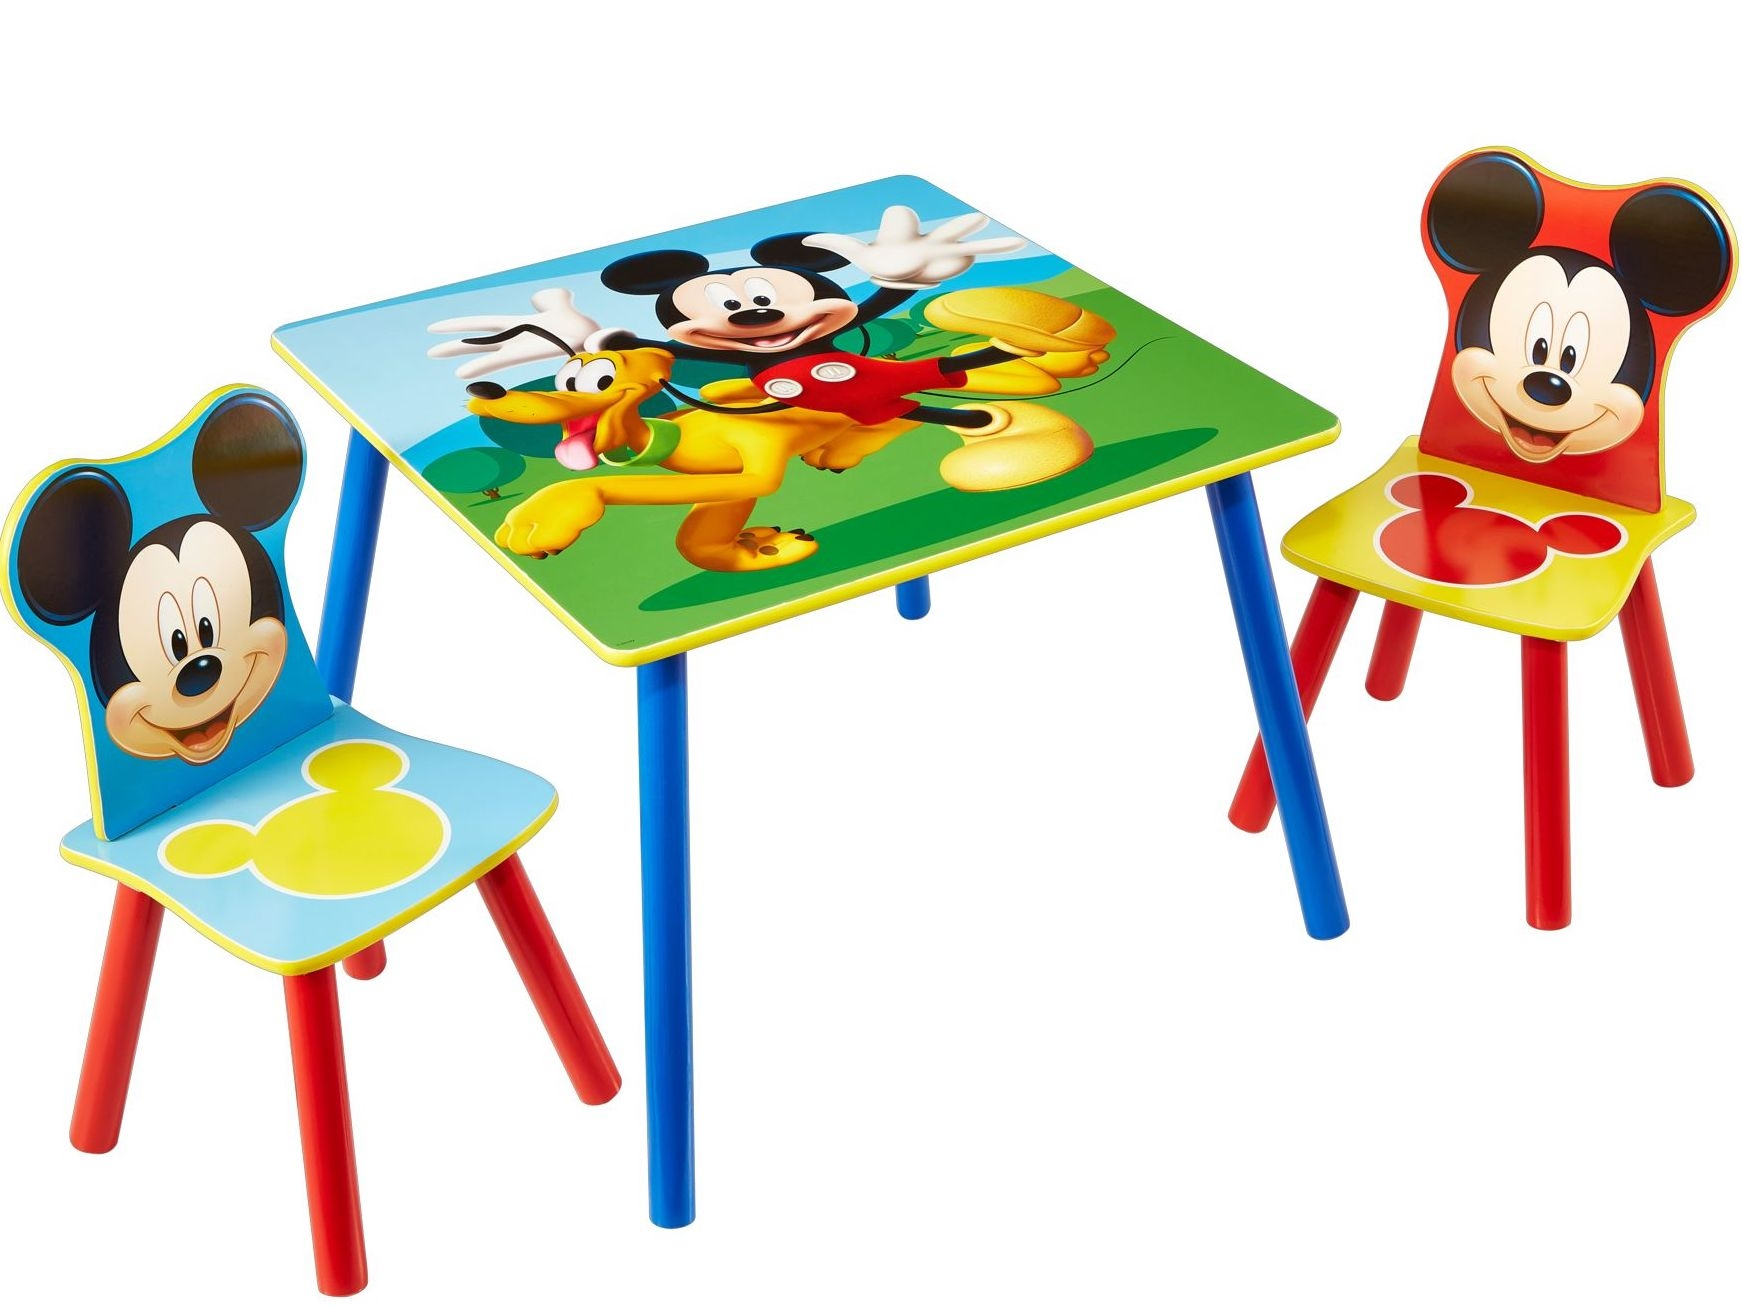 tente mickey image is loading with tente mickey boite a goter mickey mouse with tente mickey. Black Bedroom Furniture Sets. Home Design Ideas